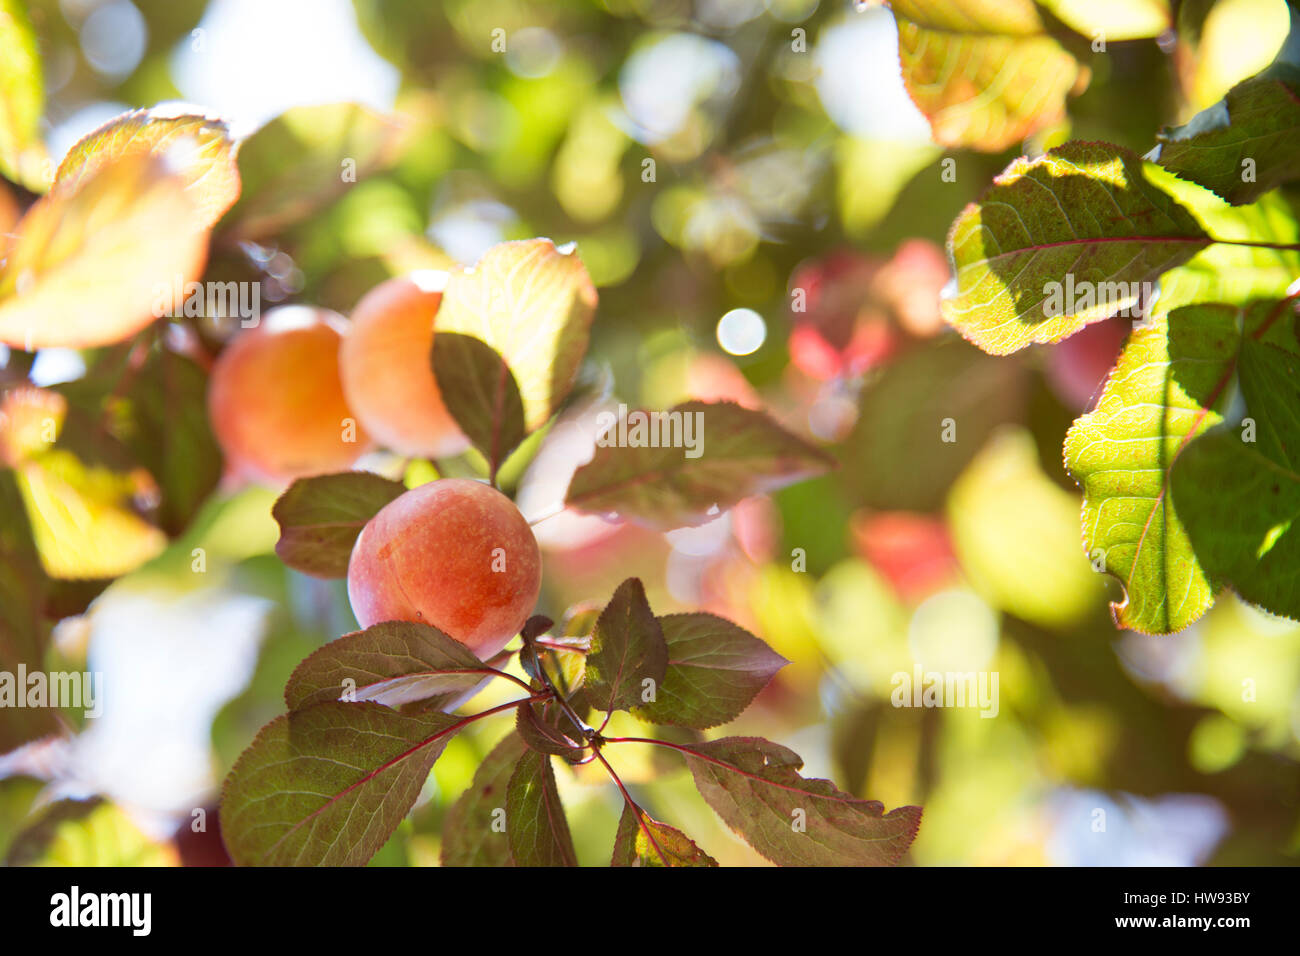 Fresh, ripe plums hang on the tree - Stock Image